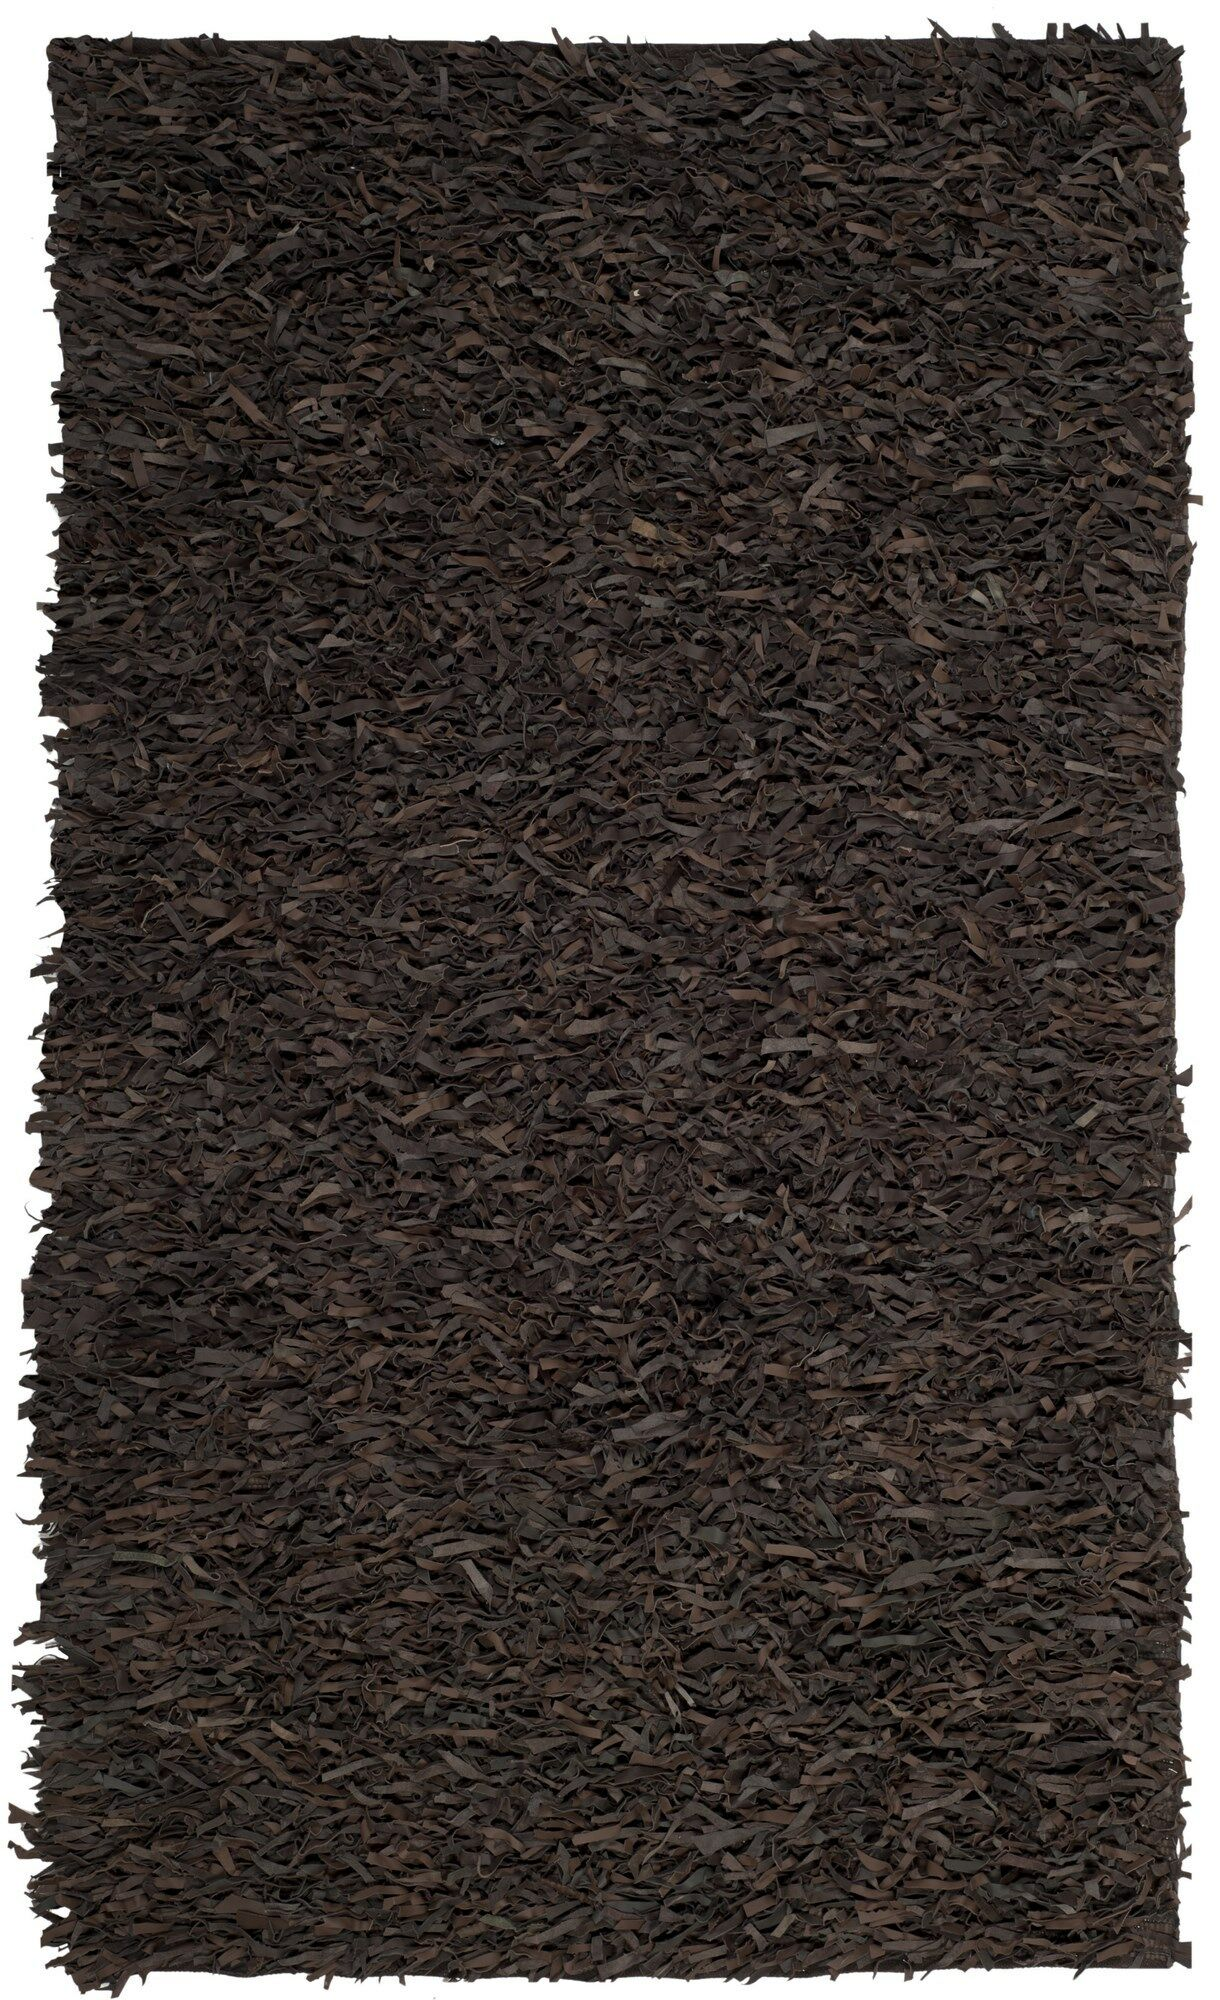 Albany Hand-Knotted Dark Brown Area Rug Rug Size: Square 5'